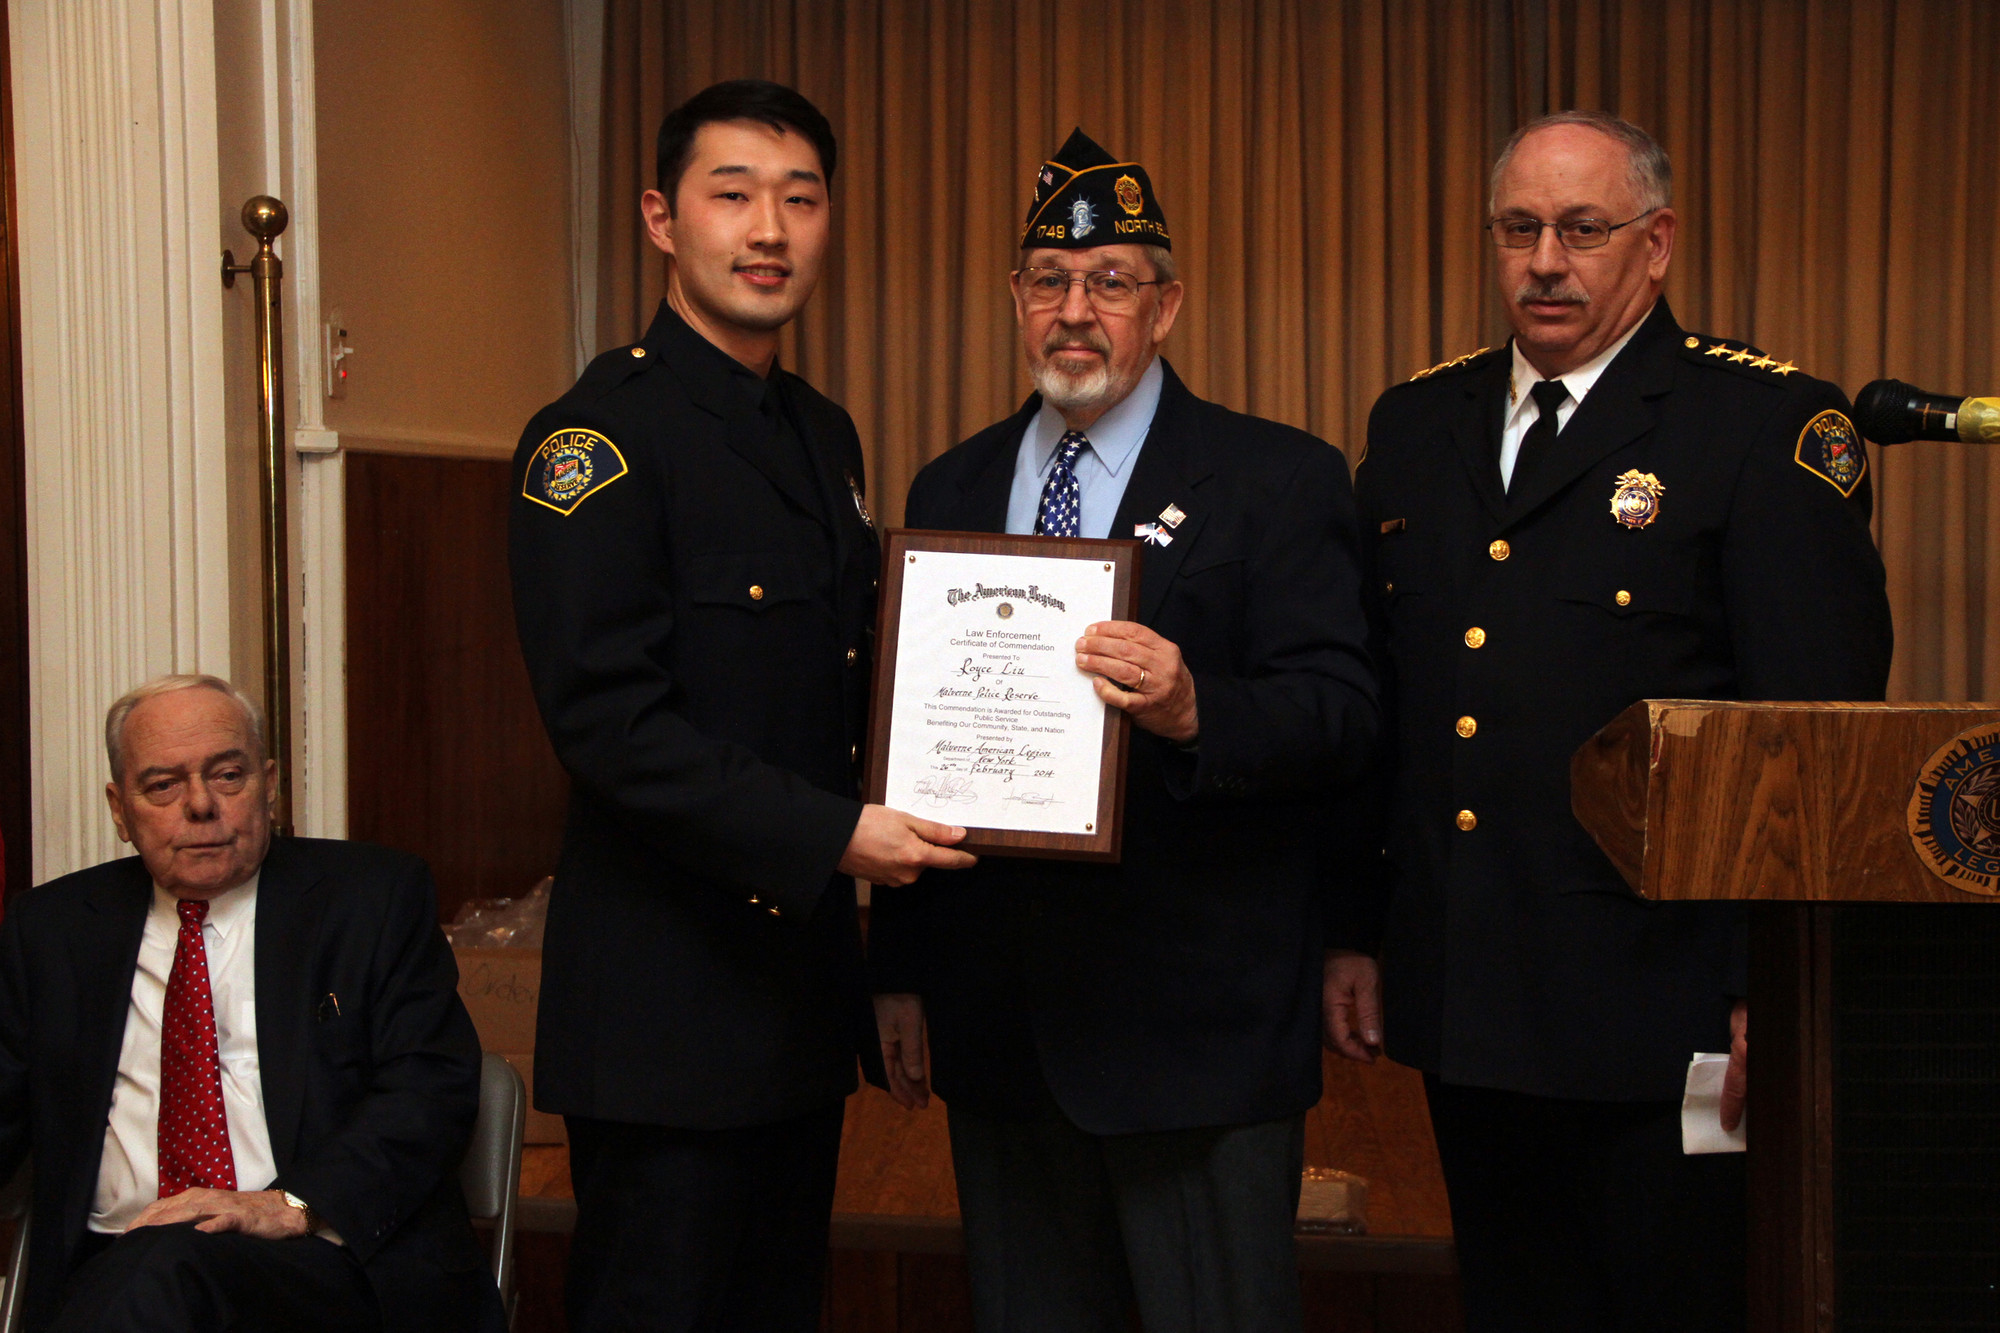 Malverne Police Reserves award recipient R.O. Royce Liu, left, with Ron Sabo and Police Reserves Chief Charles Kaufman.